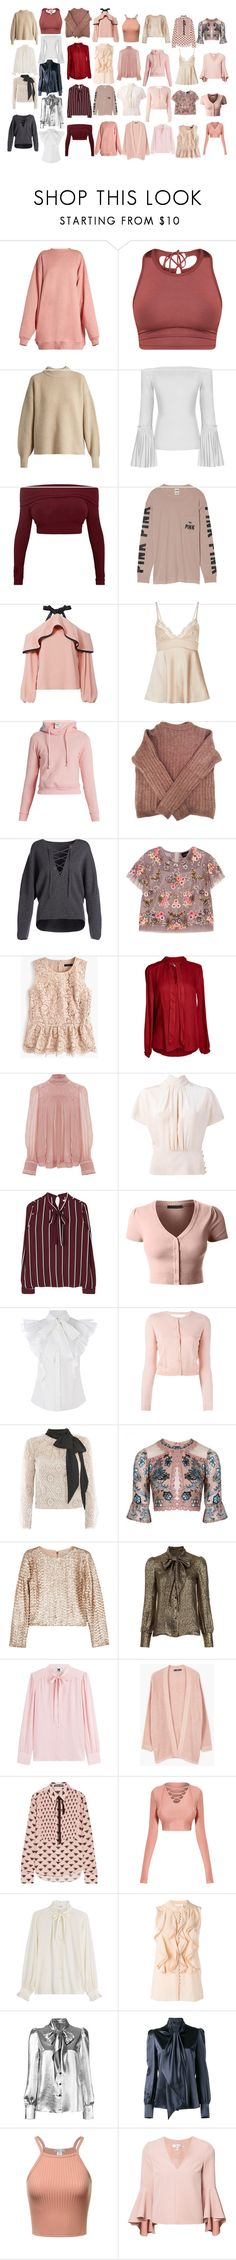 """♥"" by yourbaebehere on Polyvore featuring Acne Studios, The Row, Victoria's Secret, Alexis, Vetements, Vince, Needle & Thread, J.Crew, Velvet by Graham & Spencer and Isabel Marant"